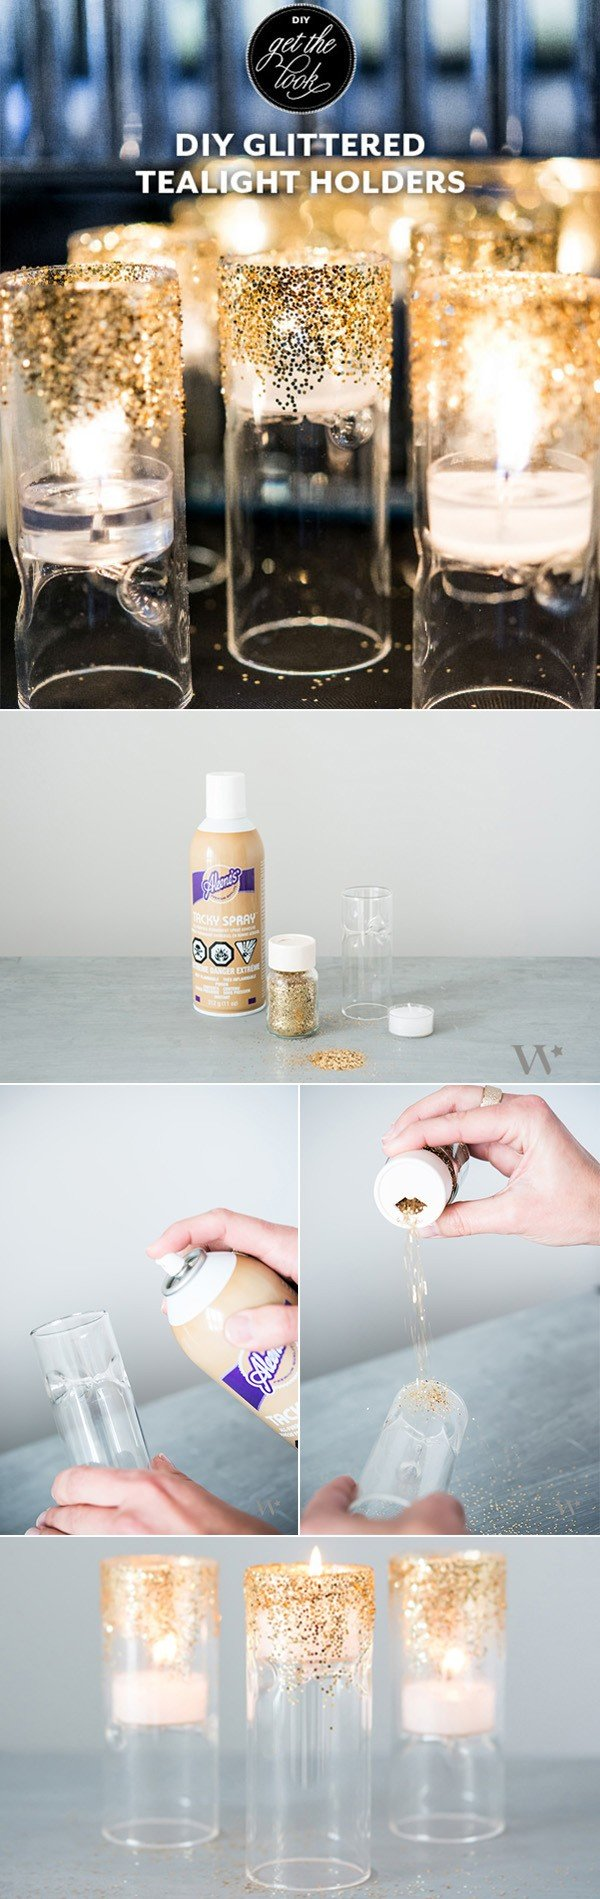 diy wedding decoration ideas glittered tealight holders